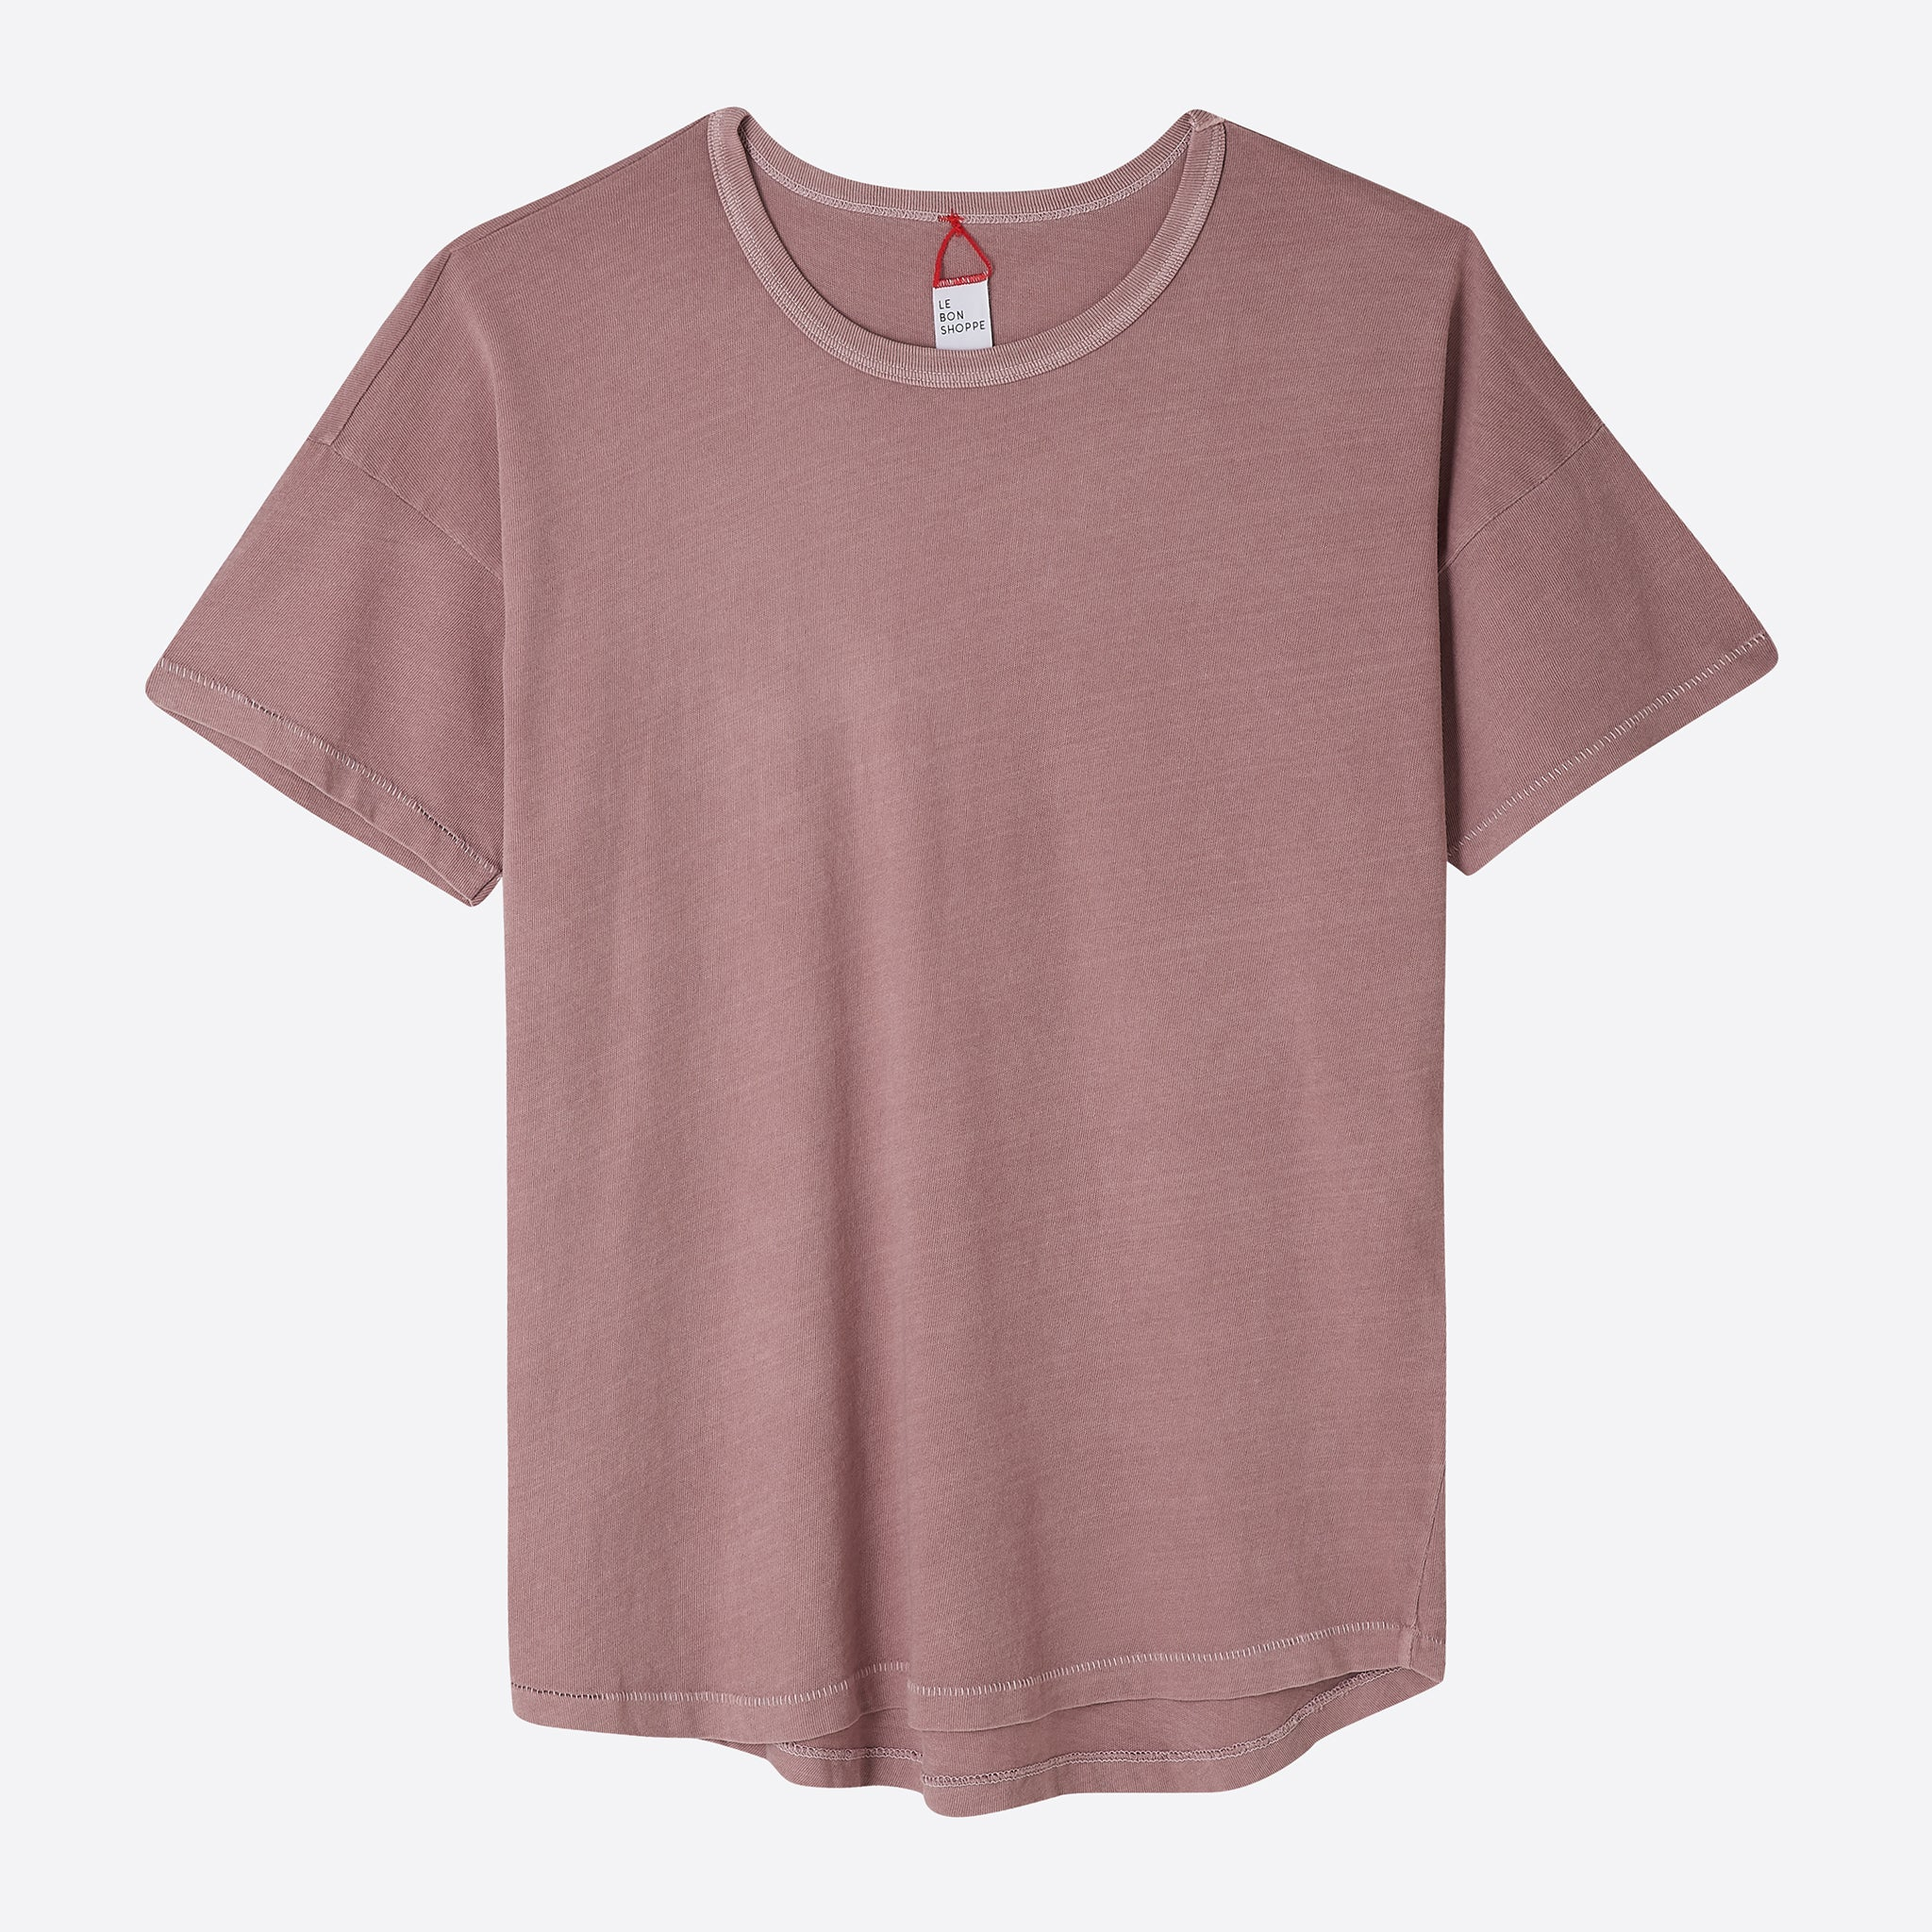 Le Bon Shoppe Her Tee in Dried Rose